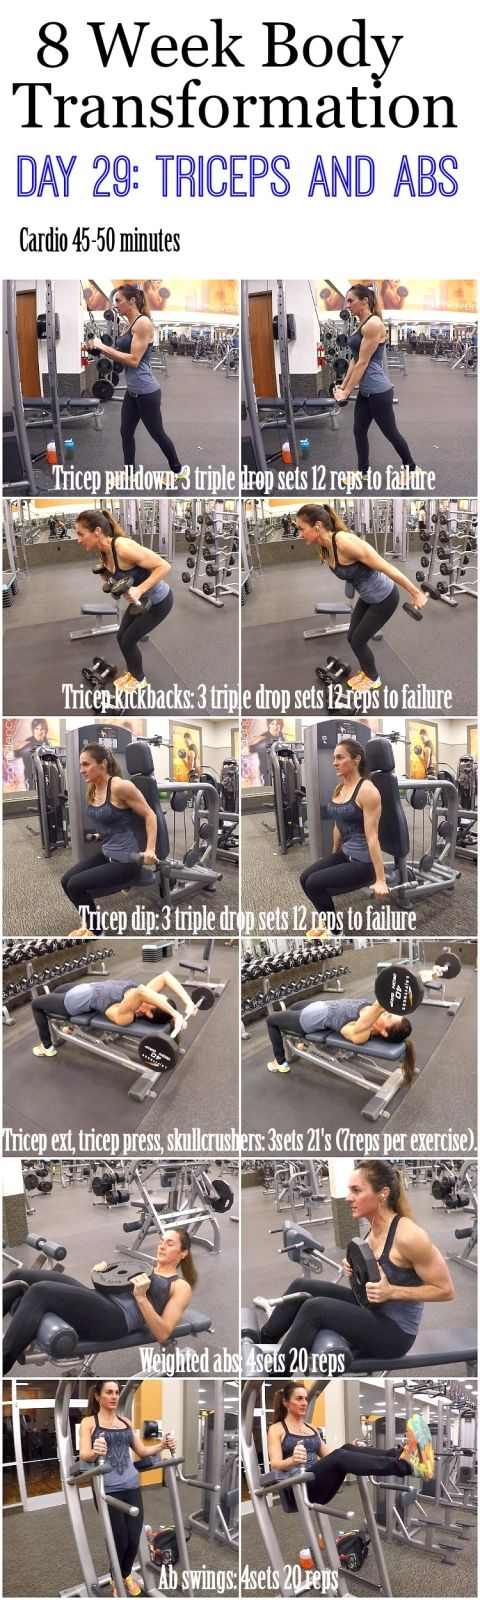 Day_29_triceps_abs_BLOG